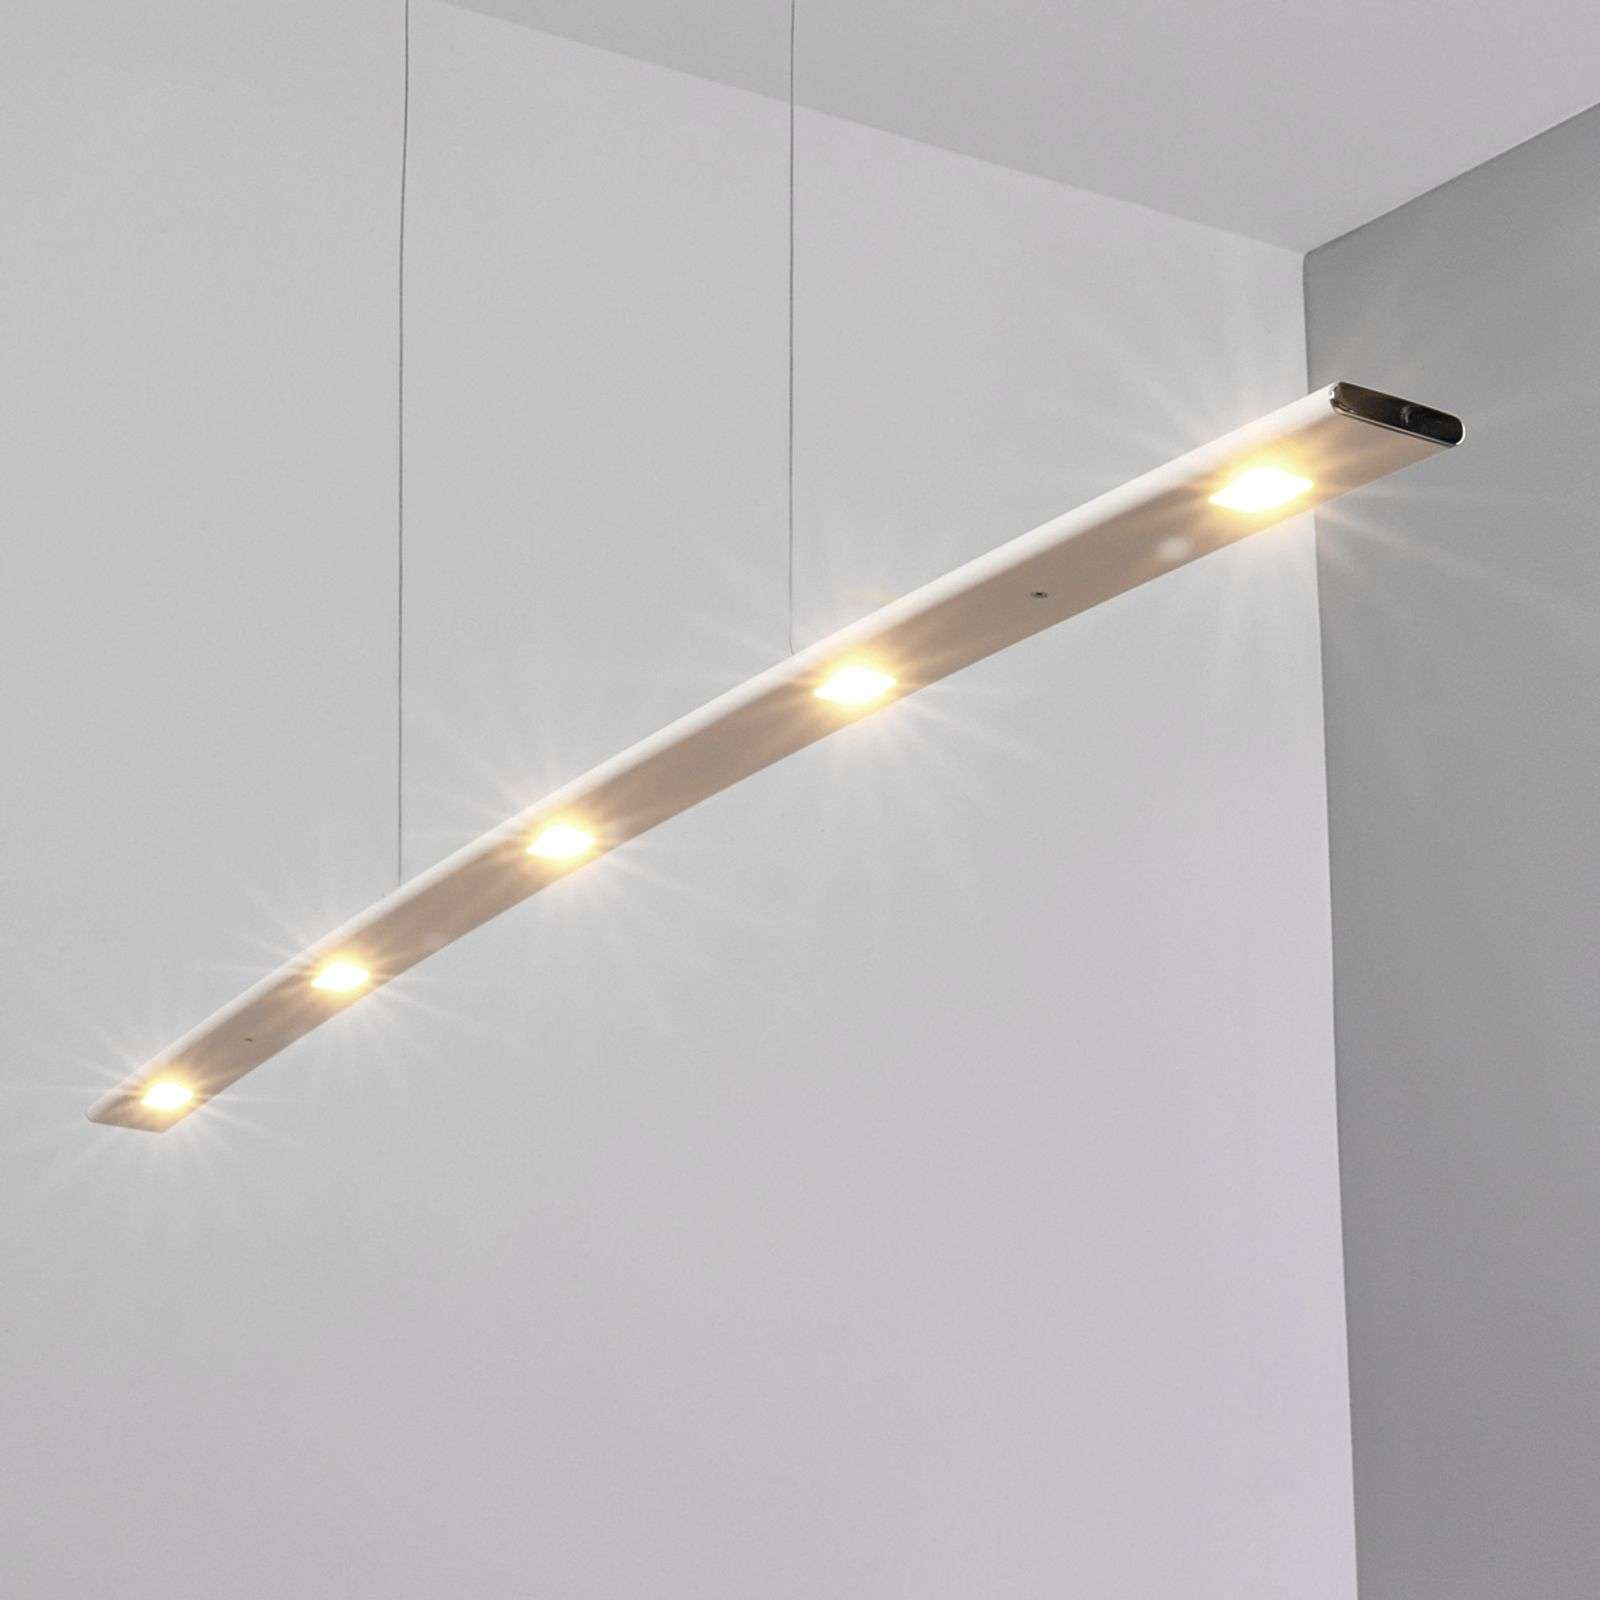 Suspension blanche LED Gina en laiton - variable